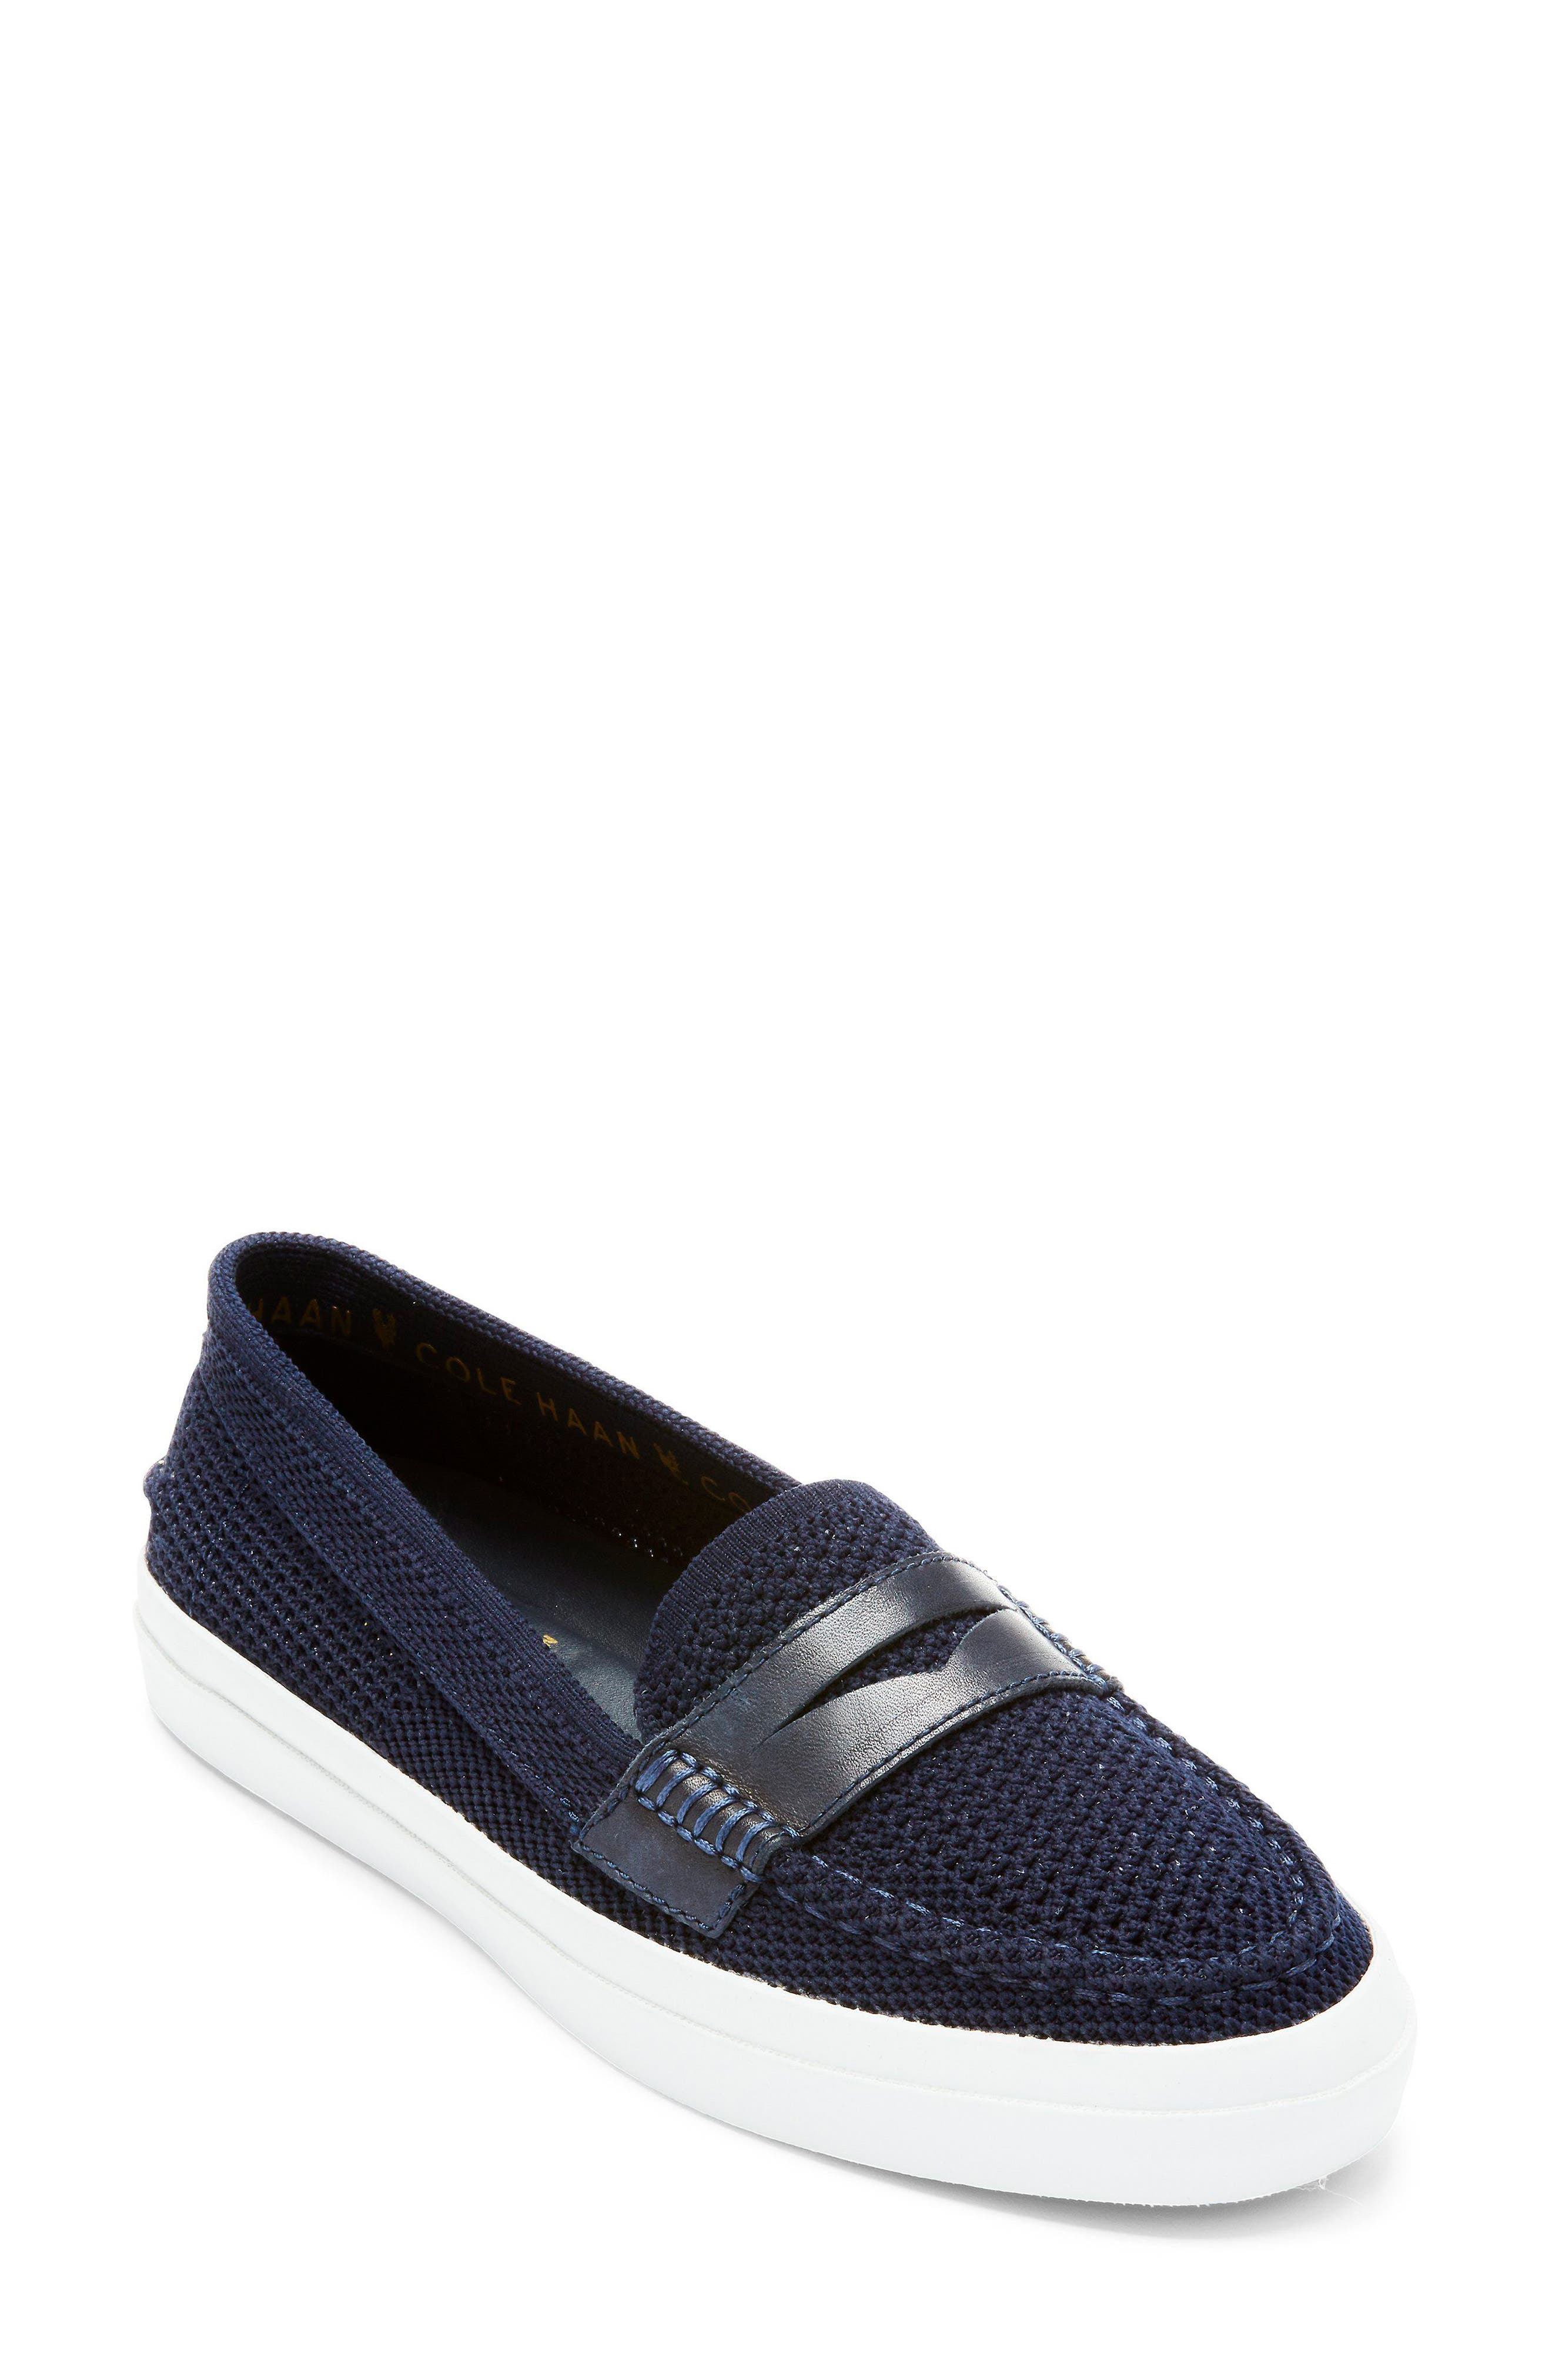 Pinch Stitchlite<sup>™</sup> Loafer,                             Main thumbnail 1, color,                             410